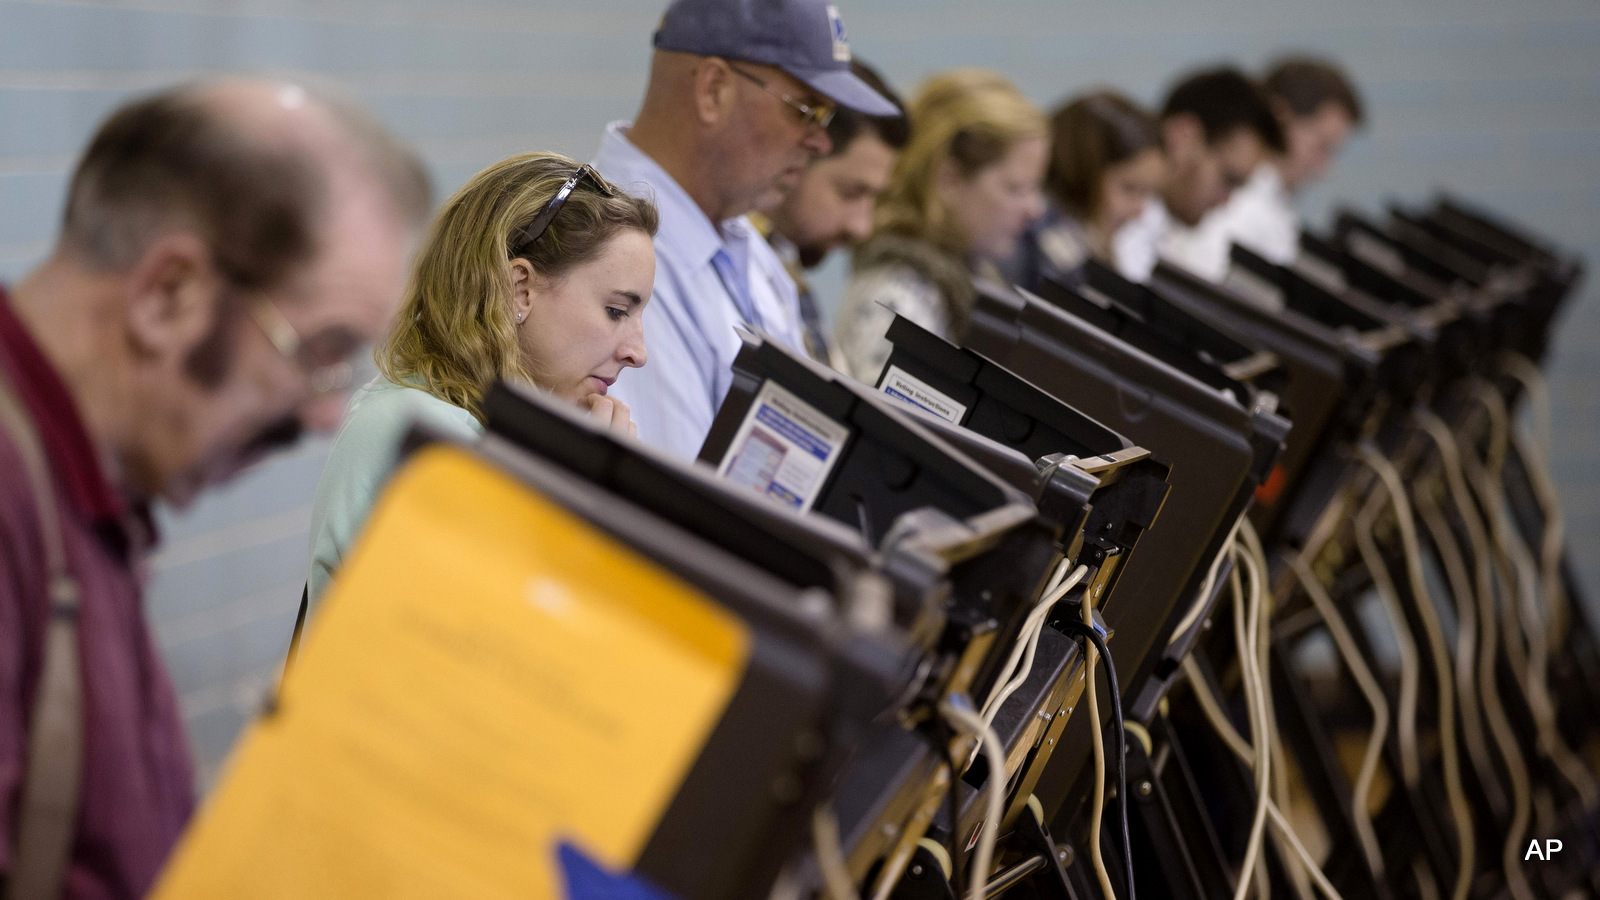 Voters use electronic voting machines at the Schiller Recreation Center polling station on election day, Tuesday, Nov. 3, 2015, in Columbus, Ohio.